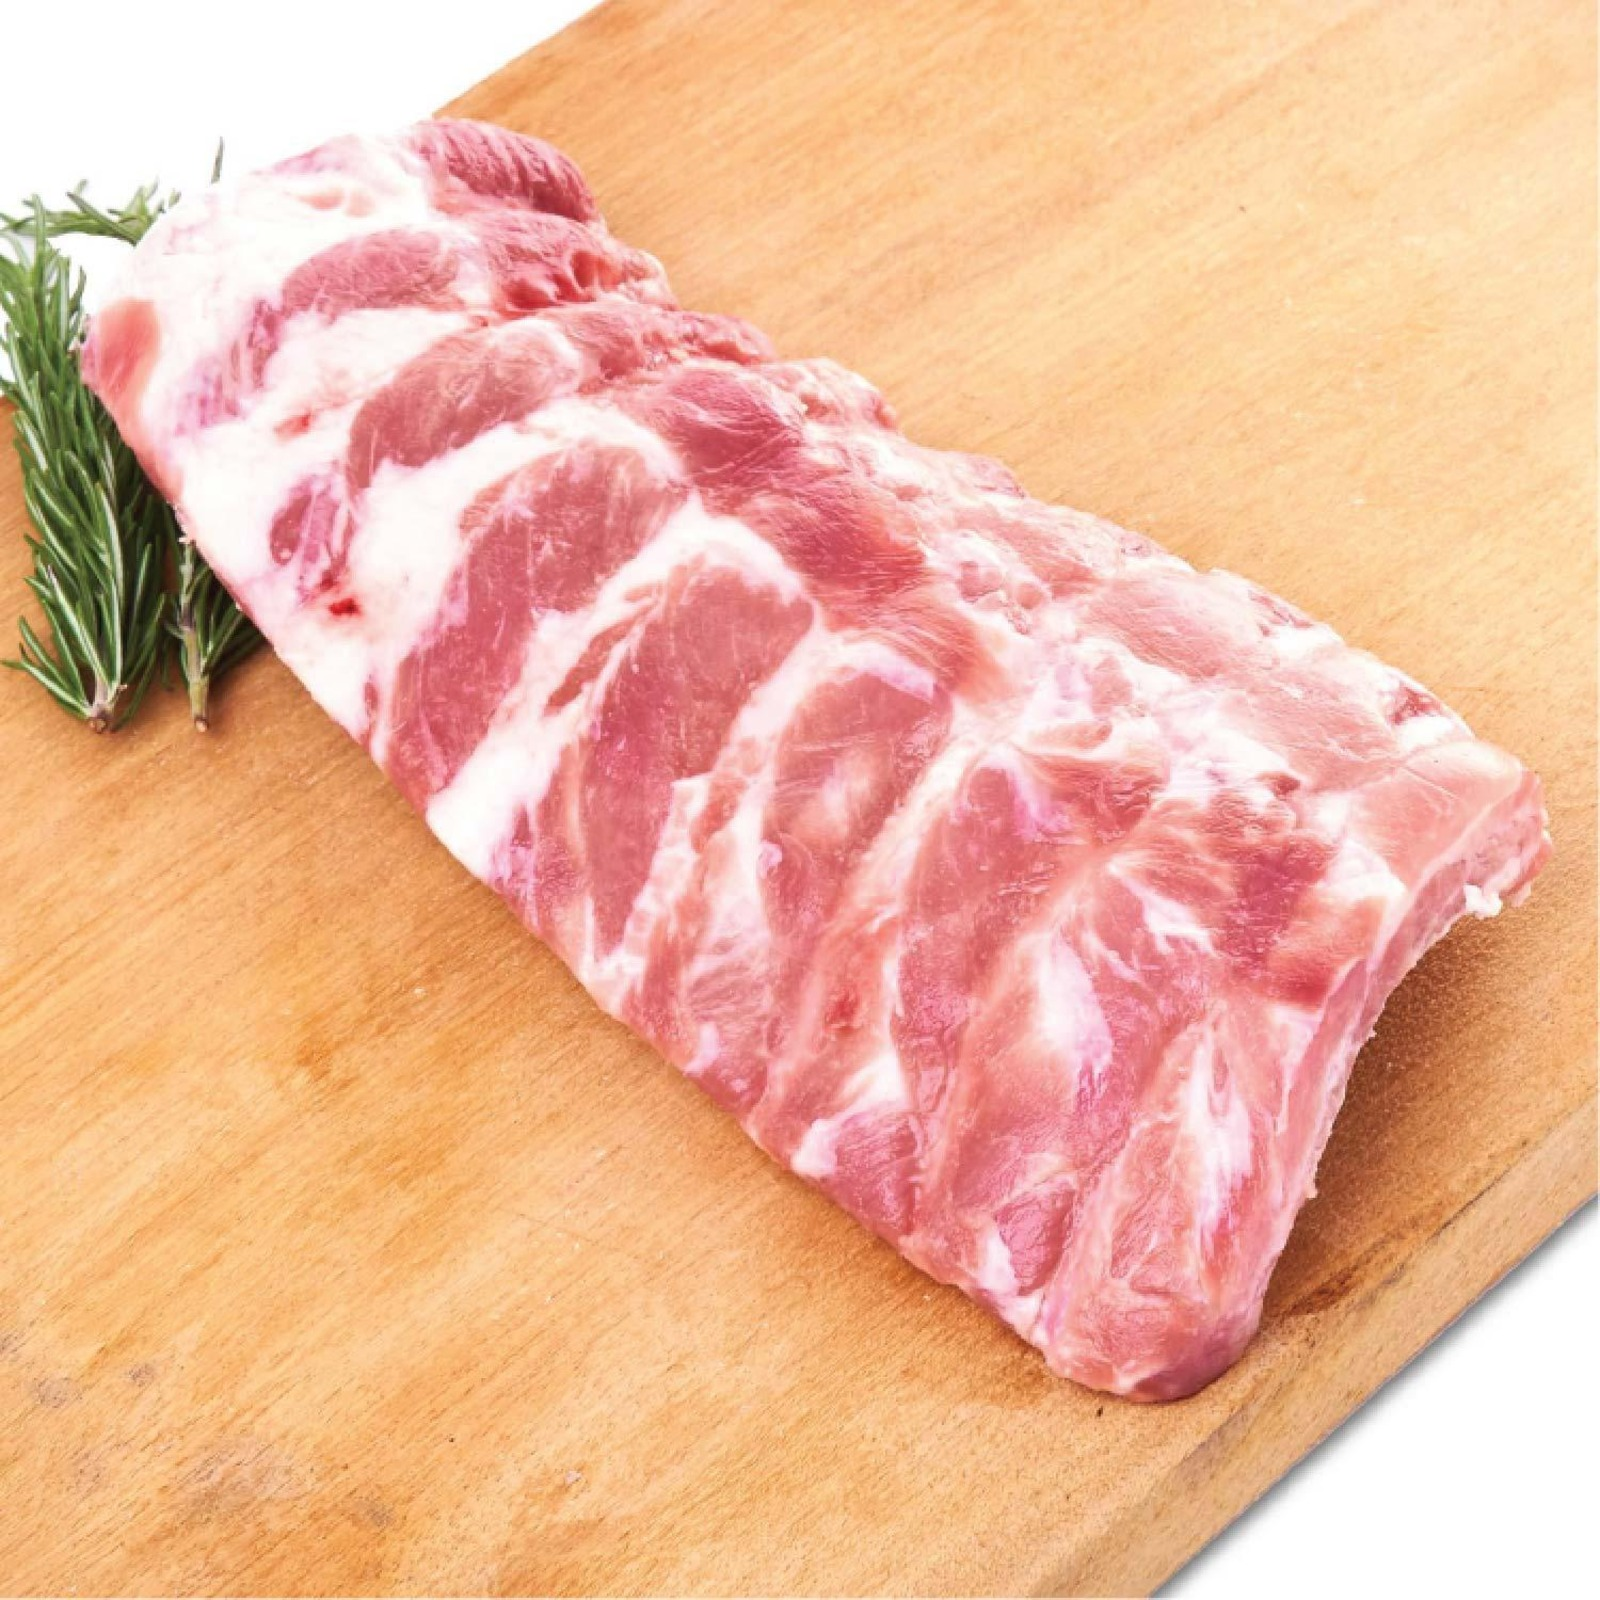 The Cellar Door Pork Baby Back Ribs - Frozen